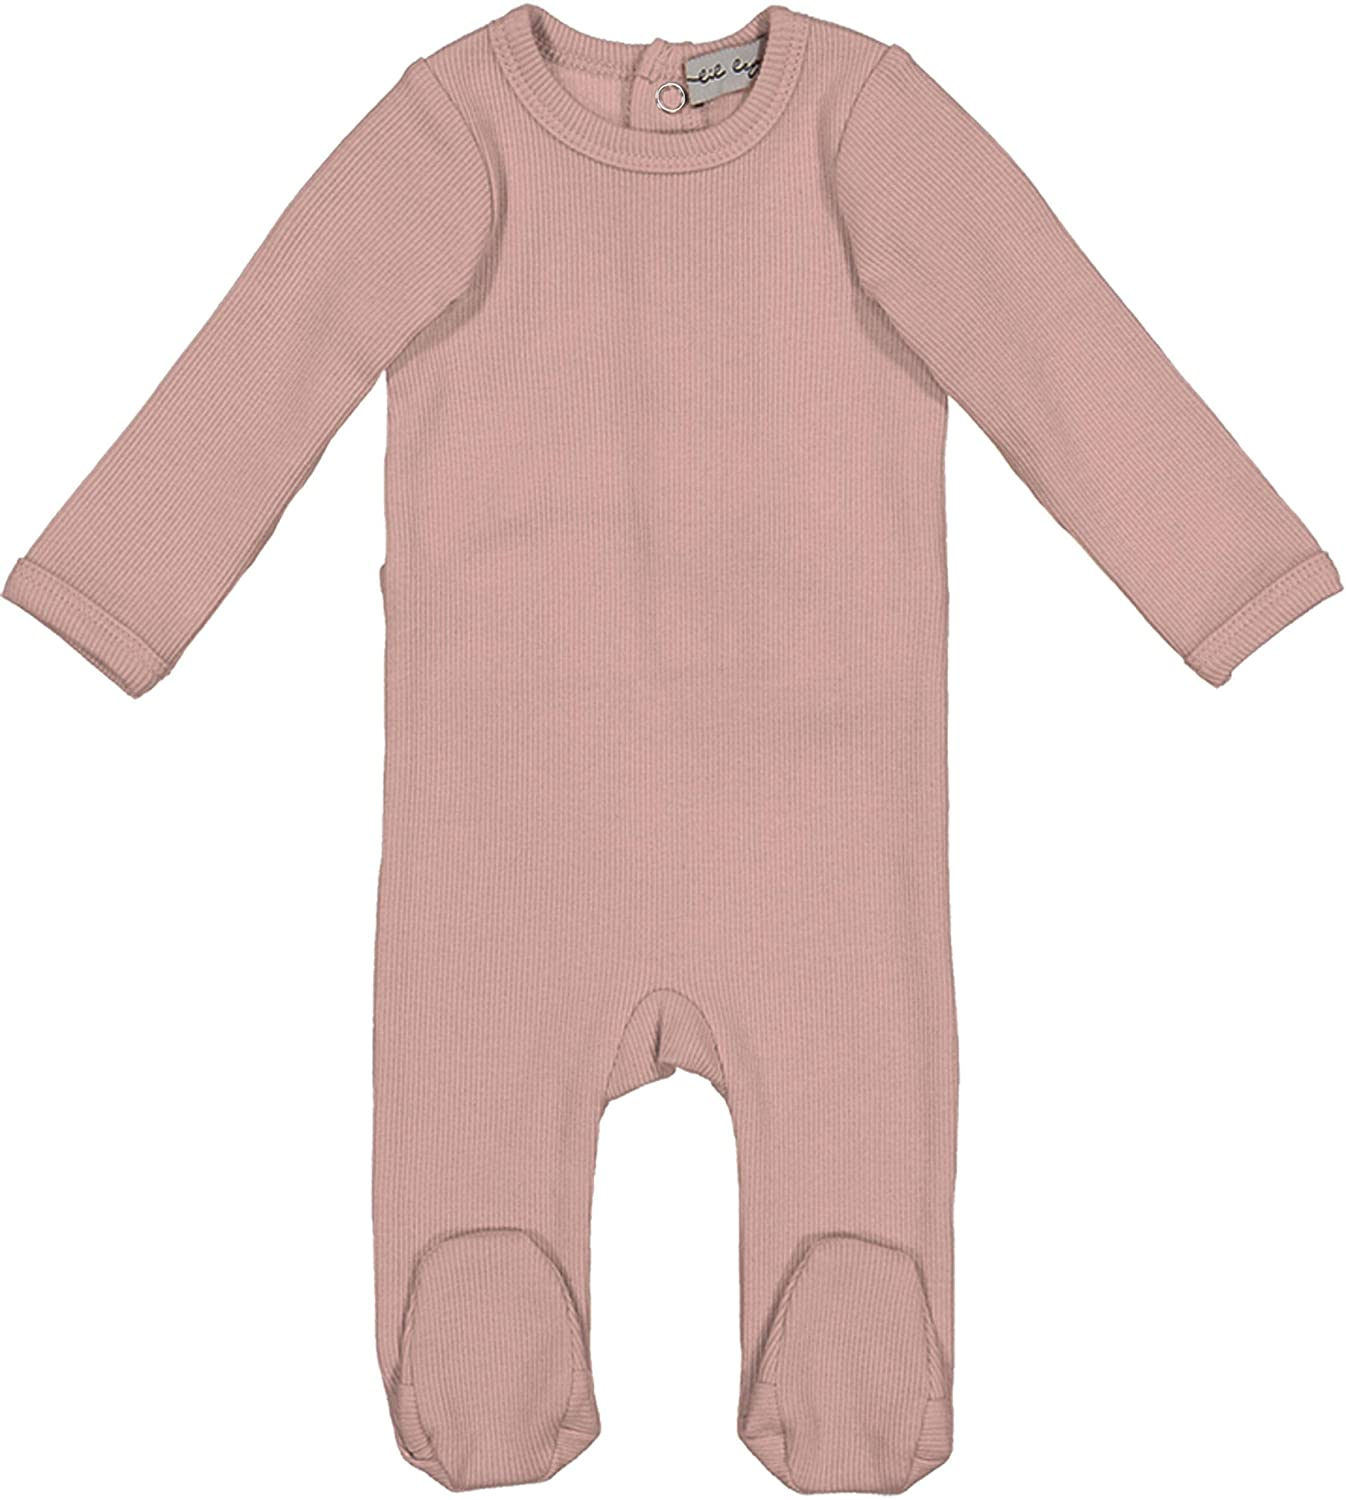 Lil Legs Boys Girls Unisex Baby Long Sleeve Ribbed Stretchie